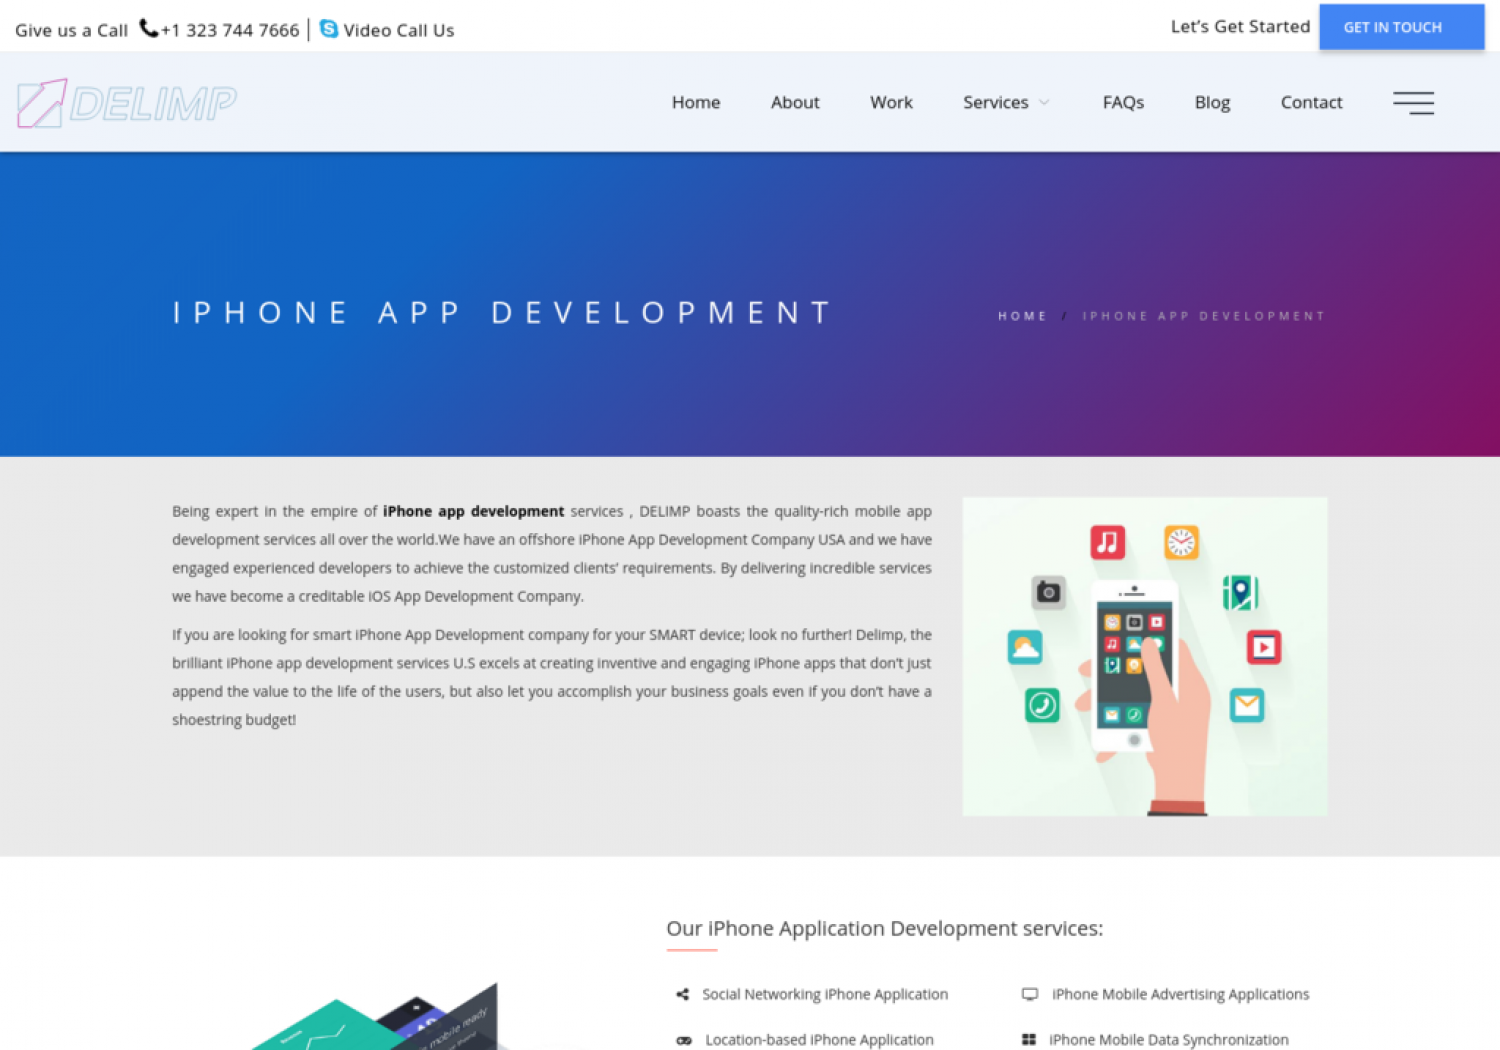 Get creative iPhone apps for your company via top iPhone App Development Company Infographic